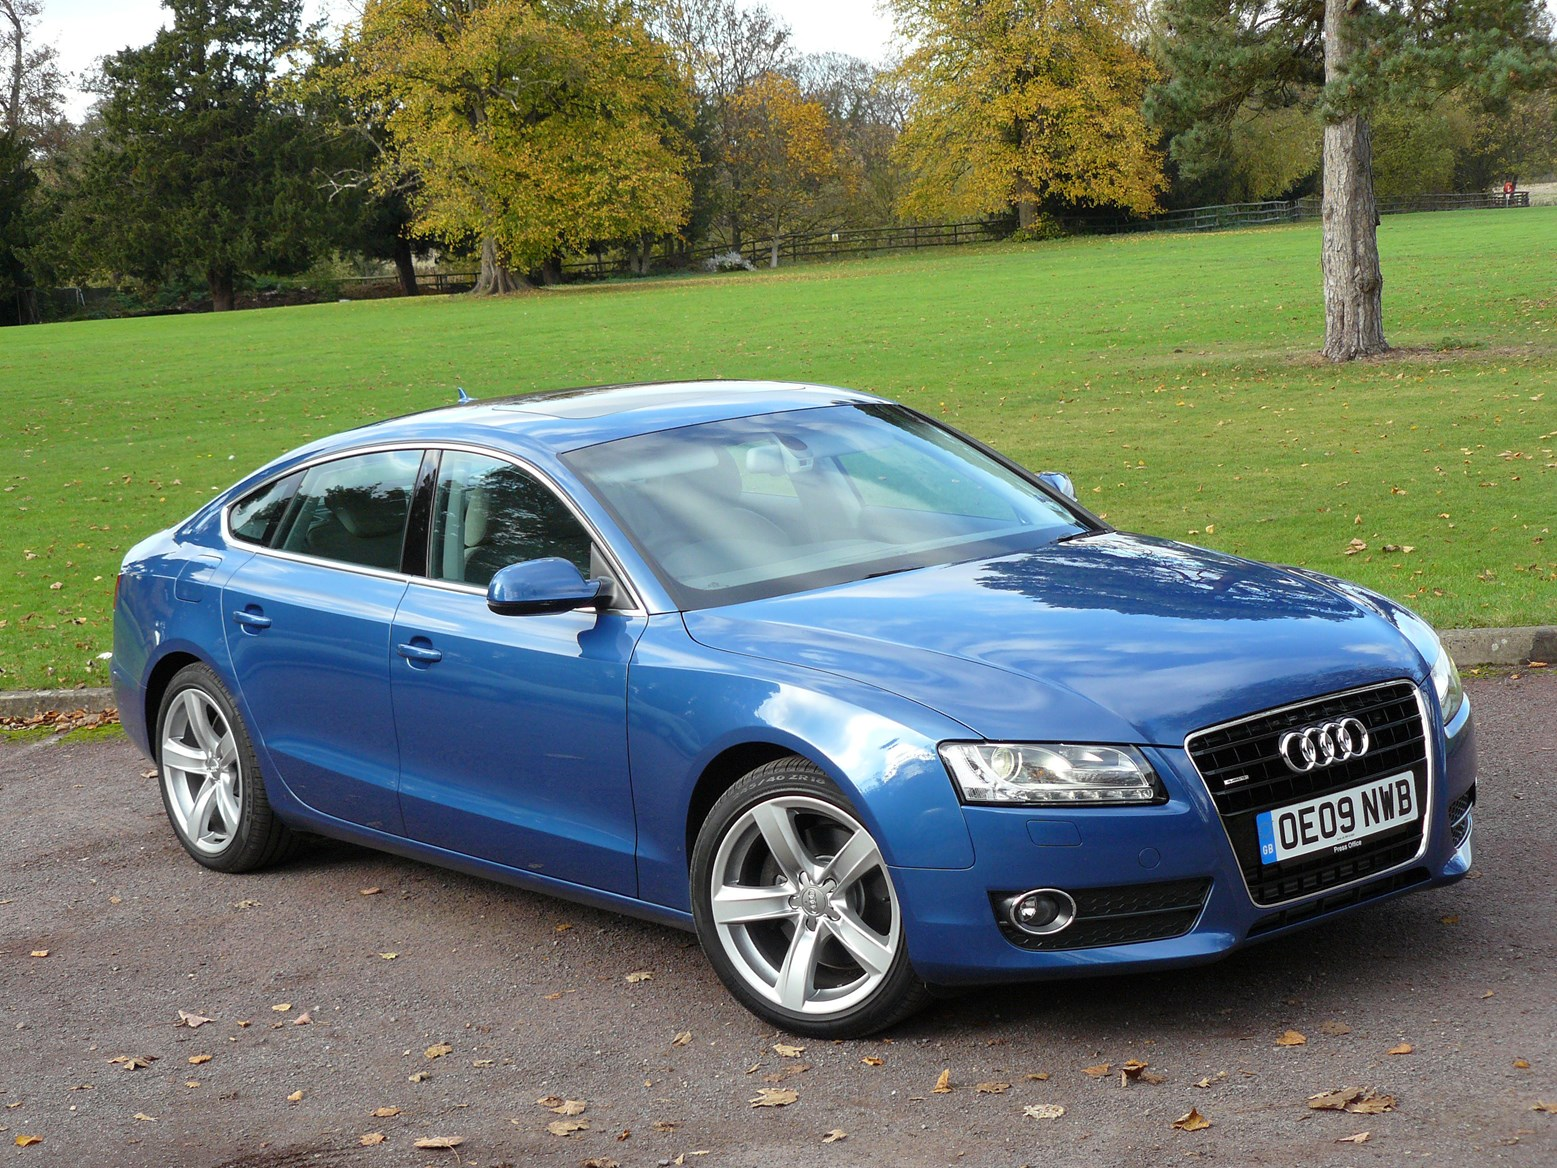 Used Audi A8 Cars For Sale In Gauteng On Auto Trader